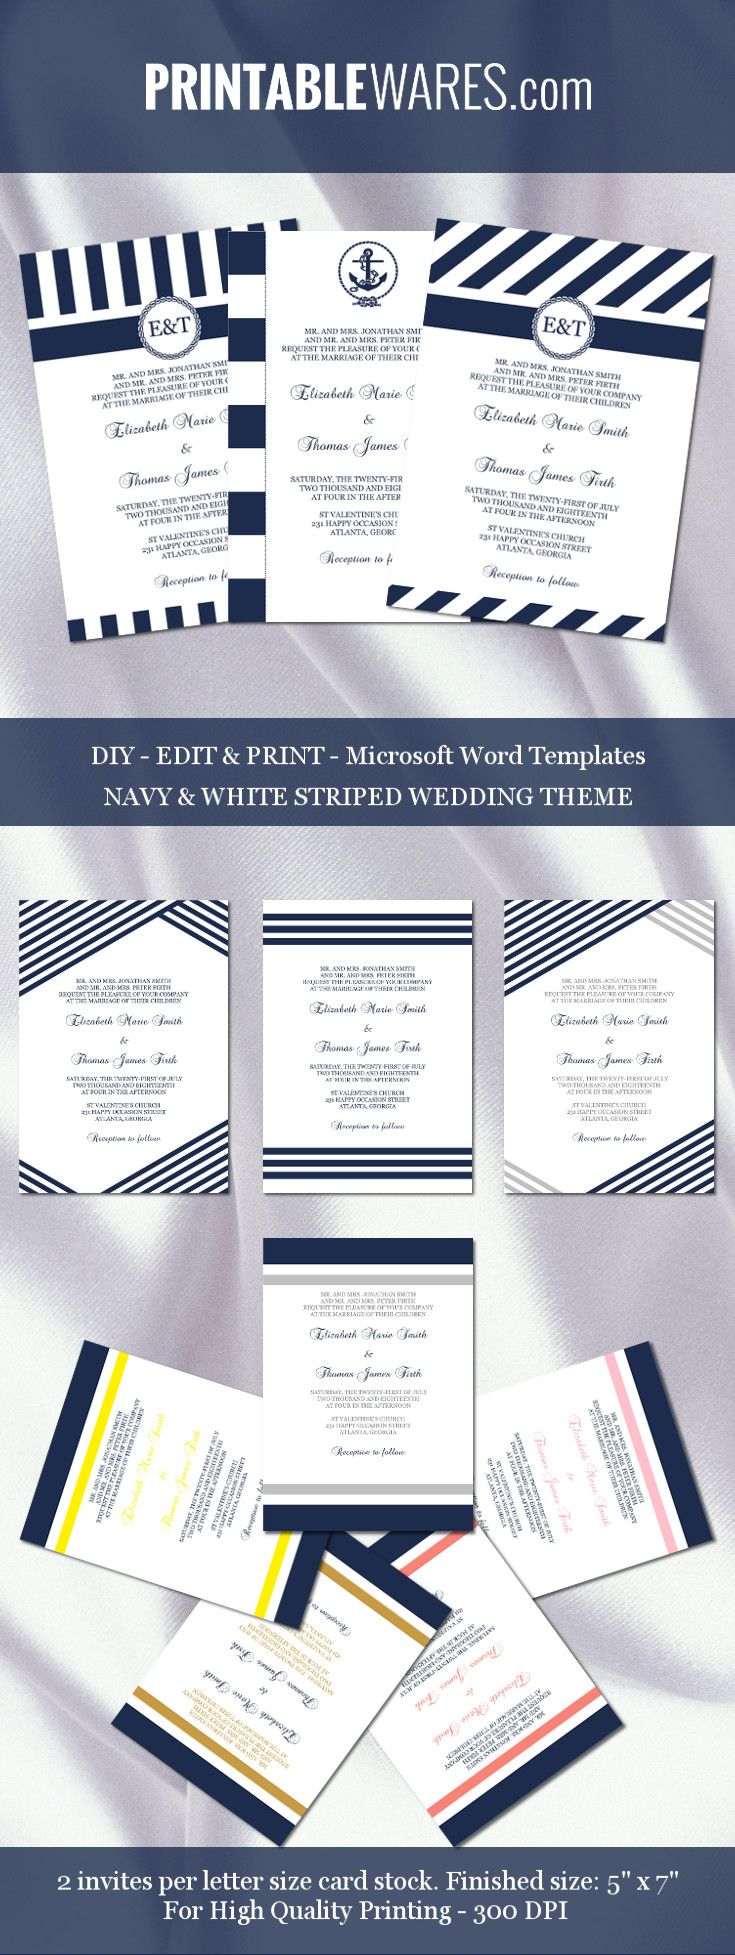 790 best Wedding Templates images – Microsoft Word Templates Invitations